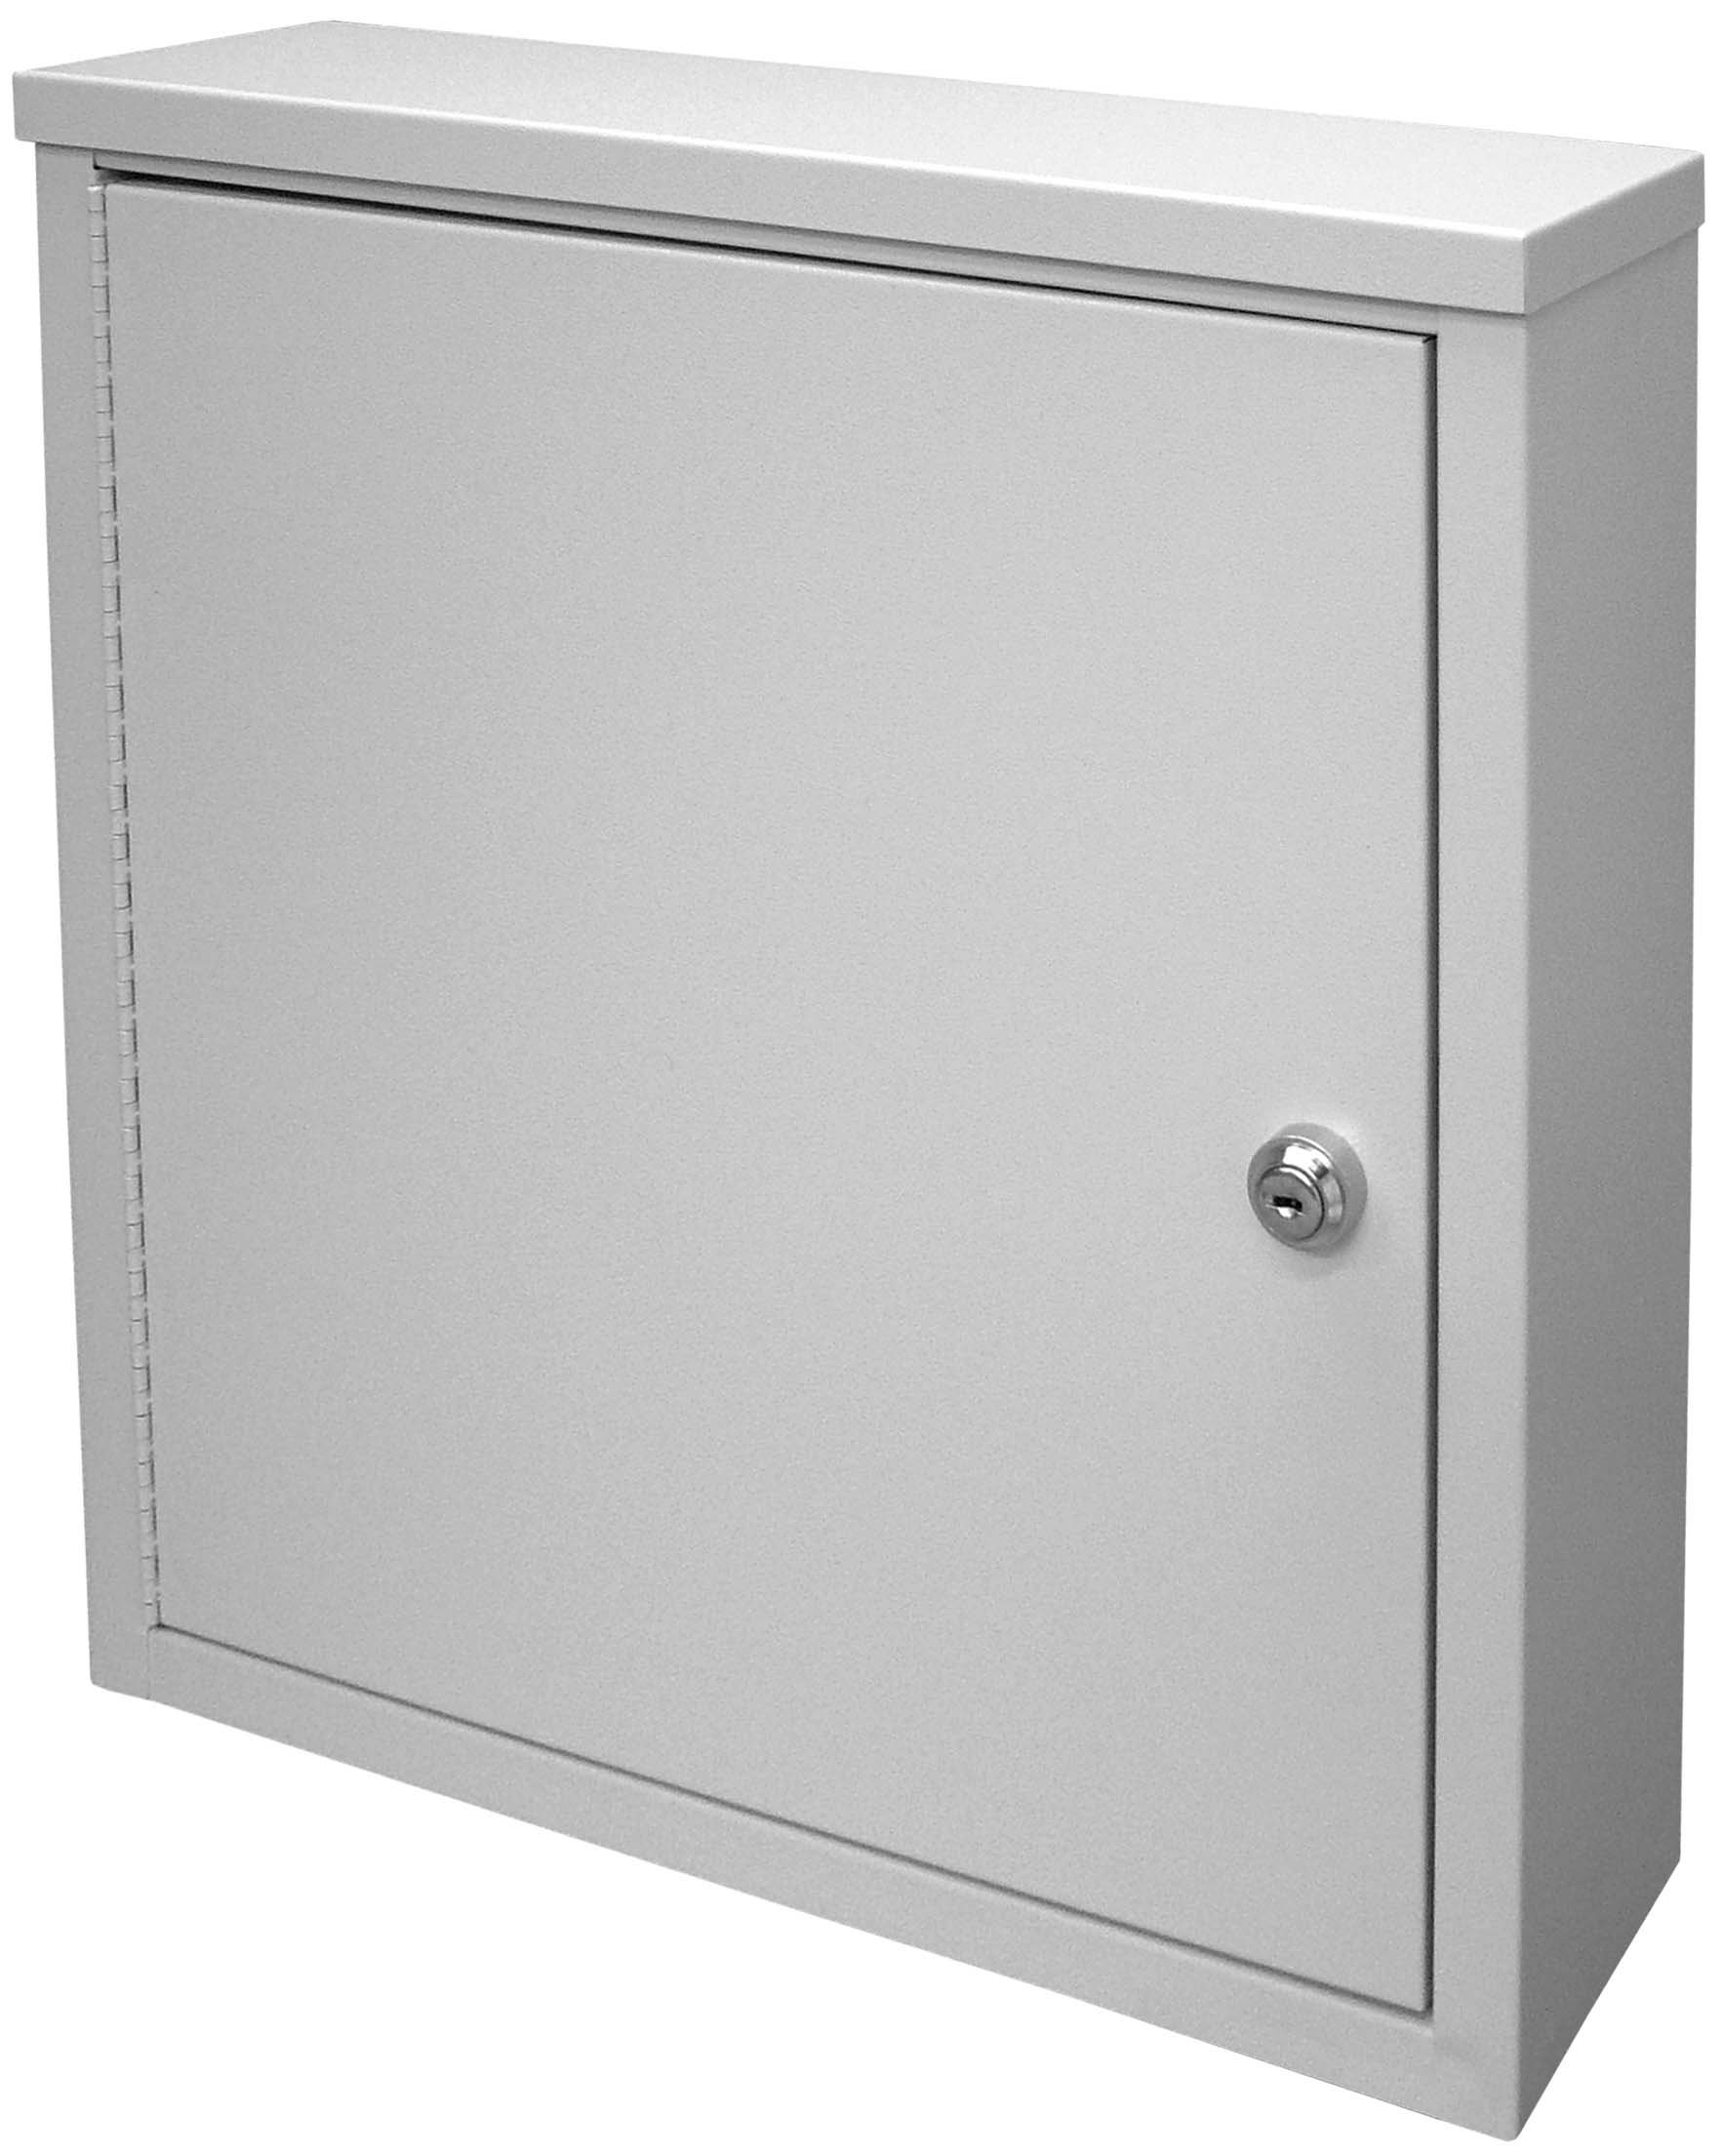 Small Wall Storage Cabinet - Light Grey